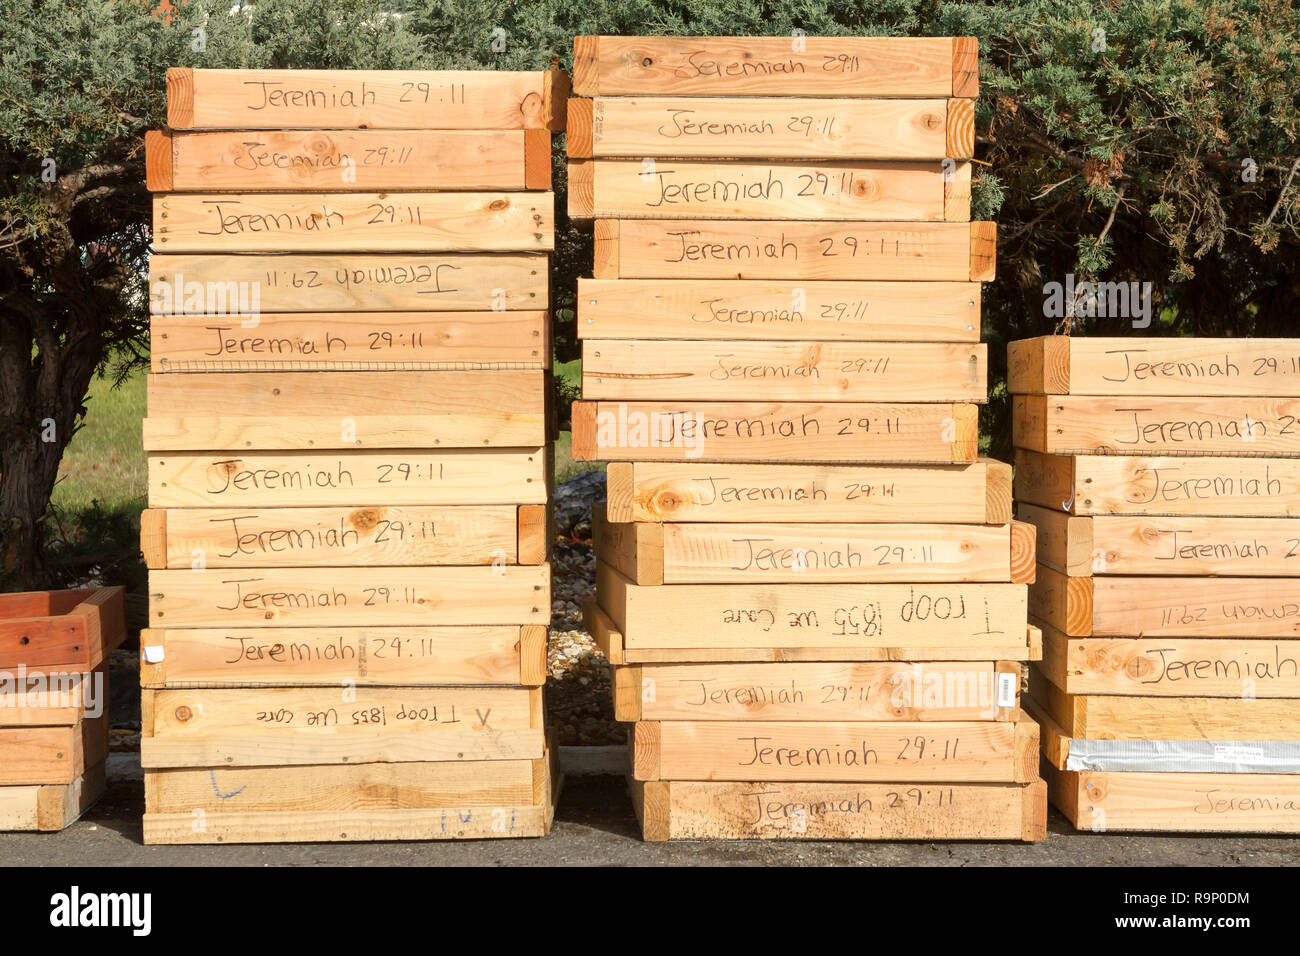 Donated Sifters - These images were captured in neighborhoods near Santa Rosa, California, where wildfires in early October 2017. - Stock Image